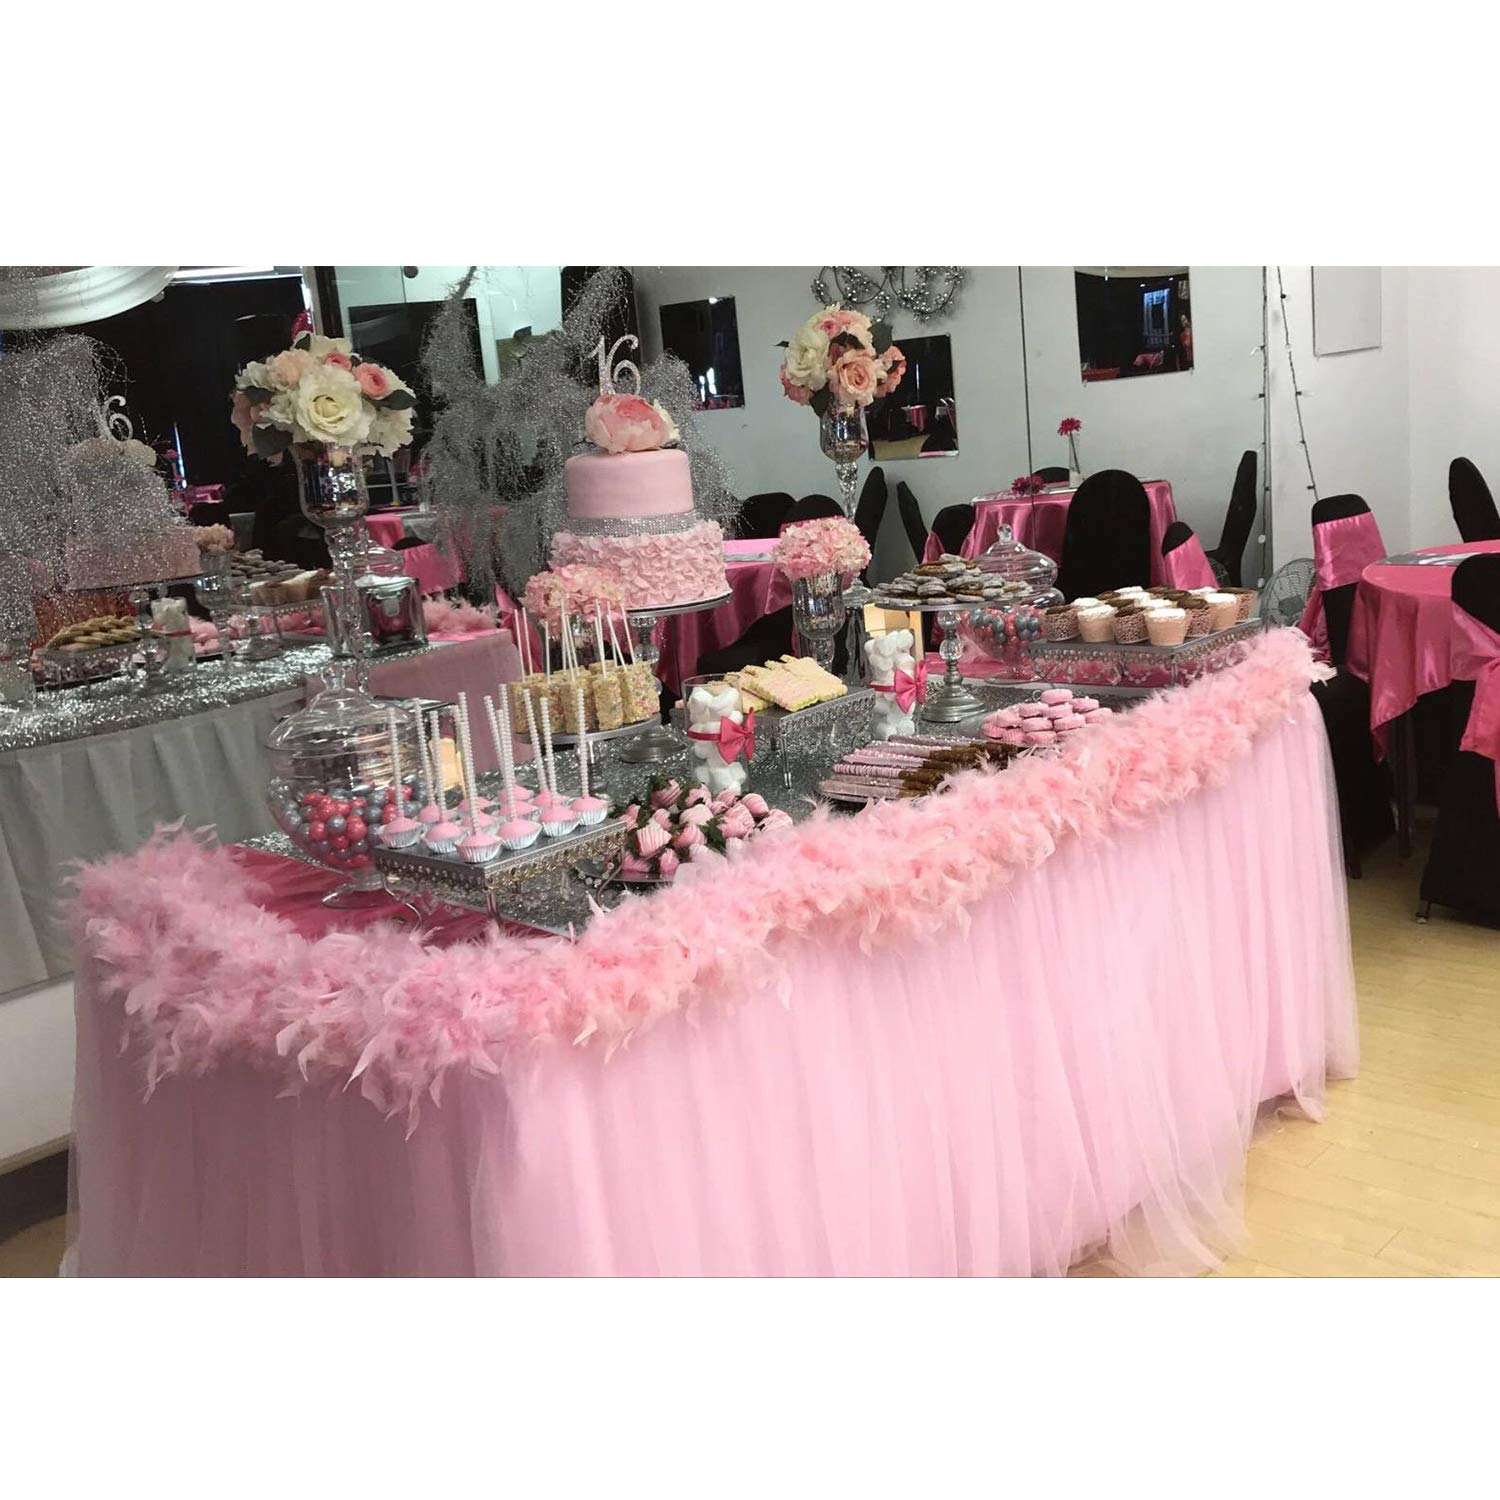 Suppromo 9 ft Pink Tulle Table Skirt for Rectangle or Round Tables Tutu Table Cloth for Party,Wedding,Birthday Party&Home Decoration,Table Skirting (L9(ft) H 30in, Pink)